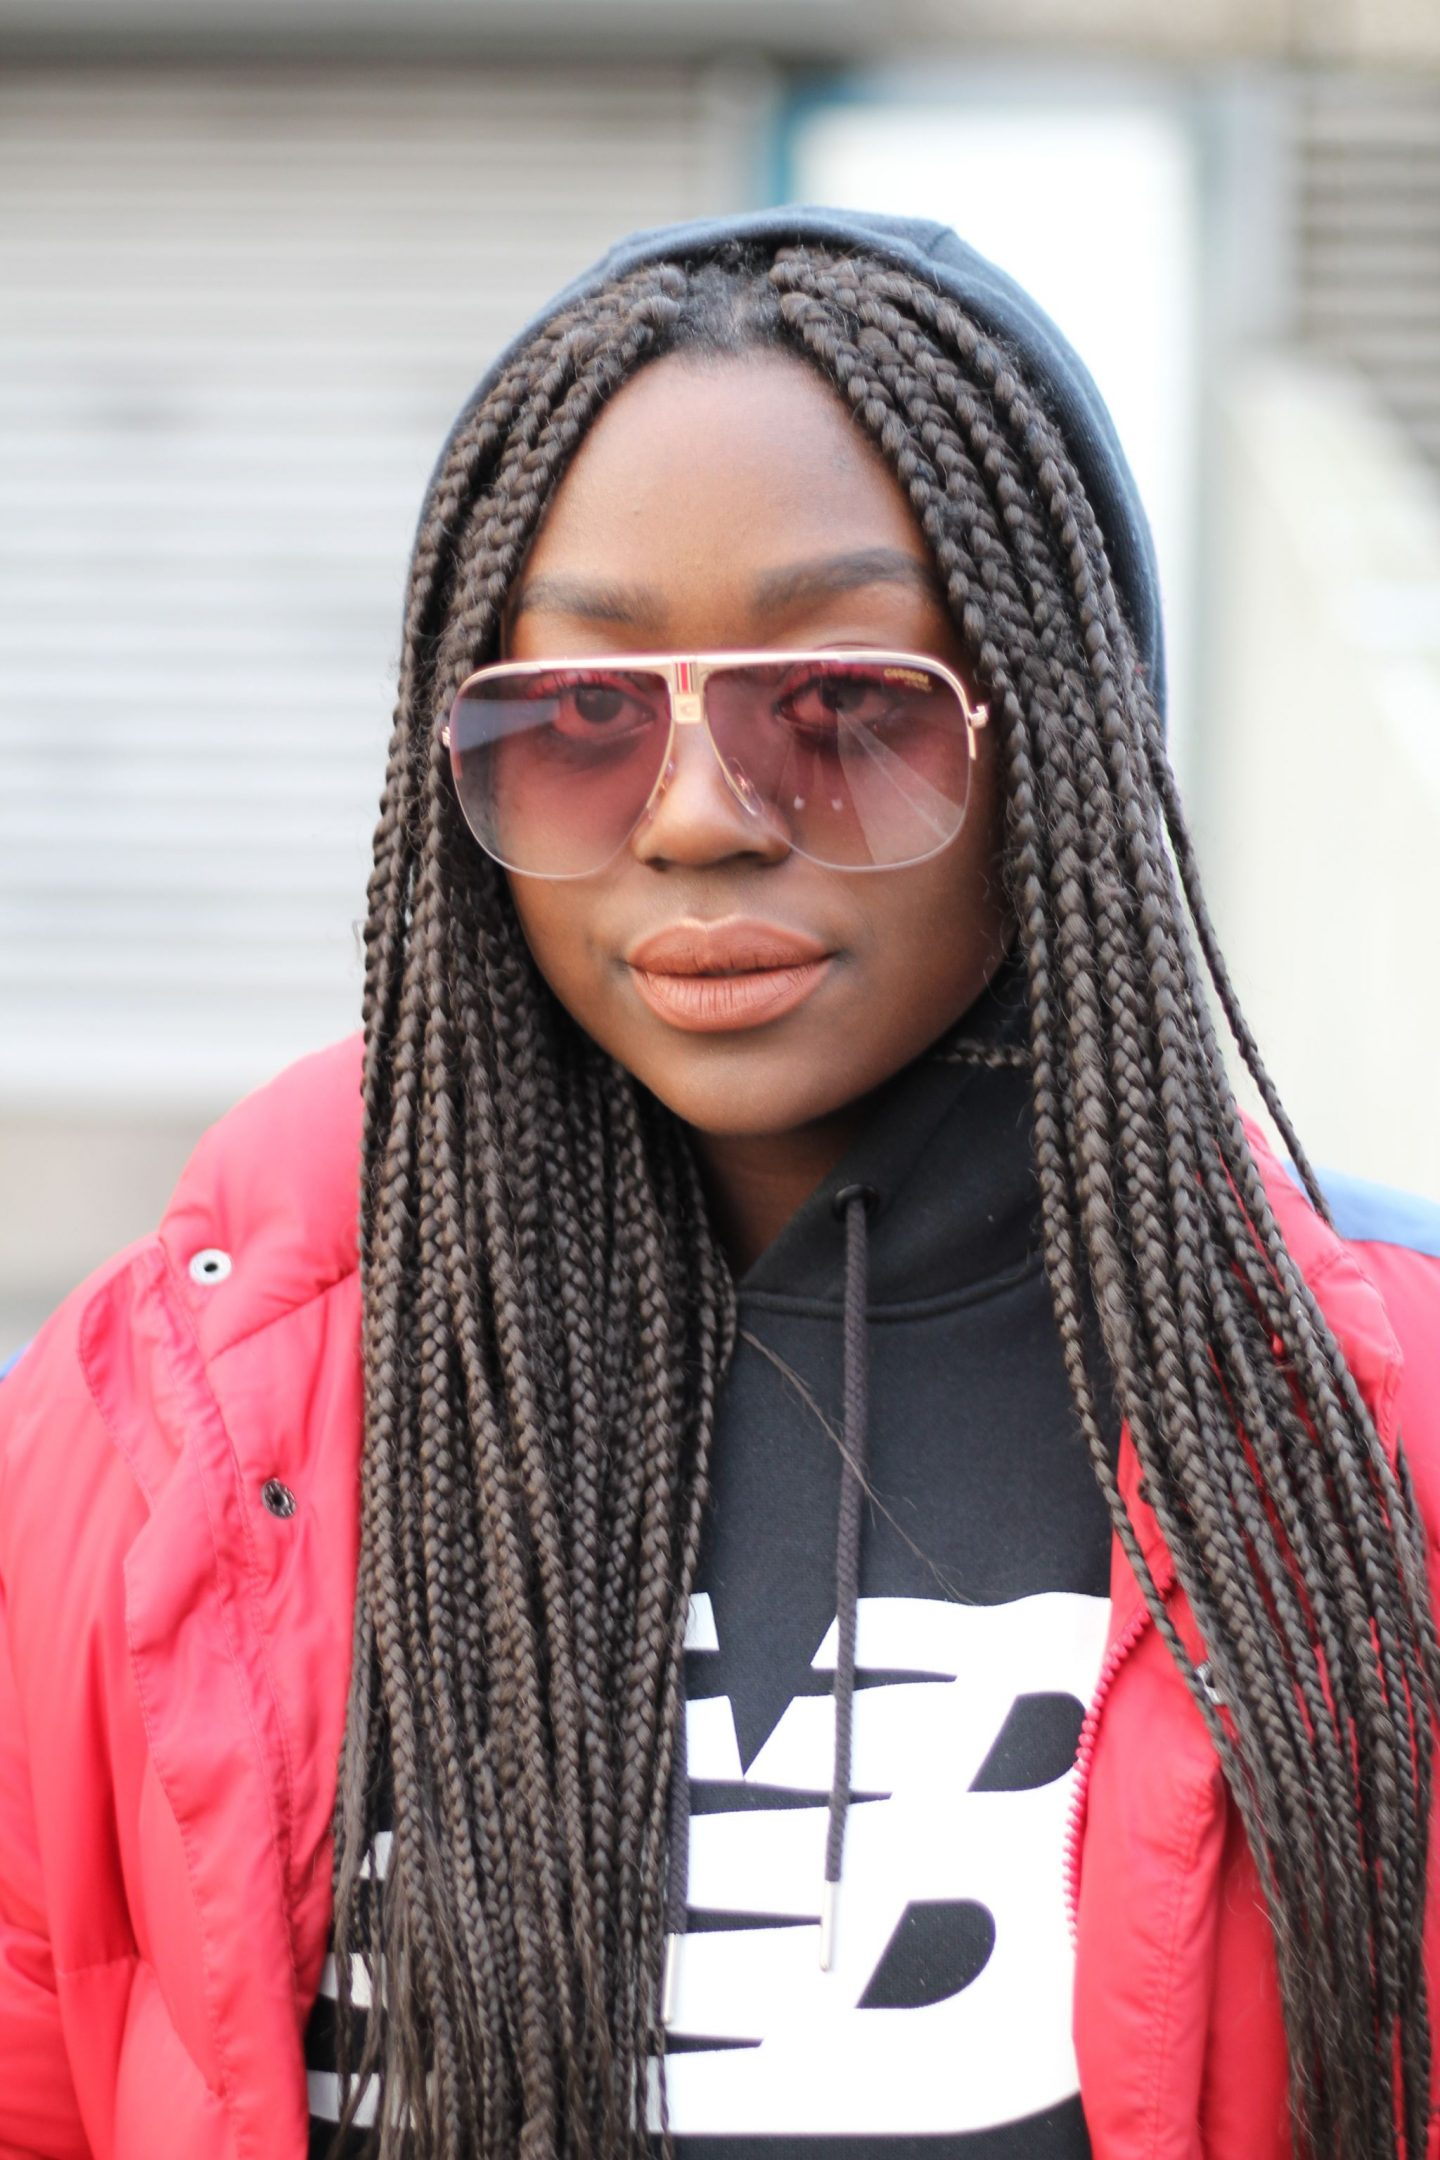 streetwear_chic_carrera_sunglasses_lois_opoku_fashion_blog_style_berlin_lisforlois_3